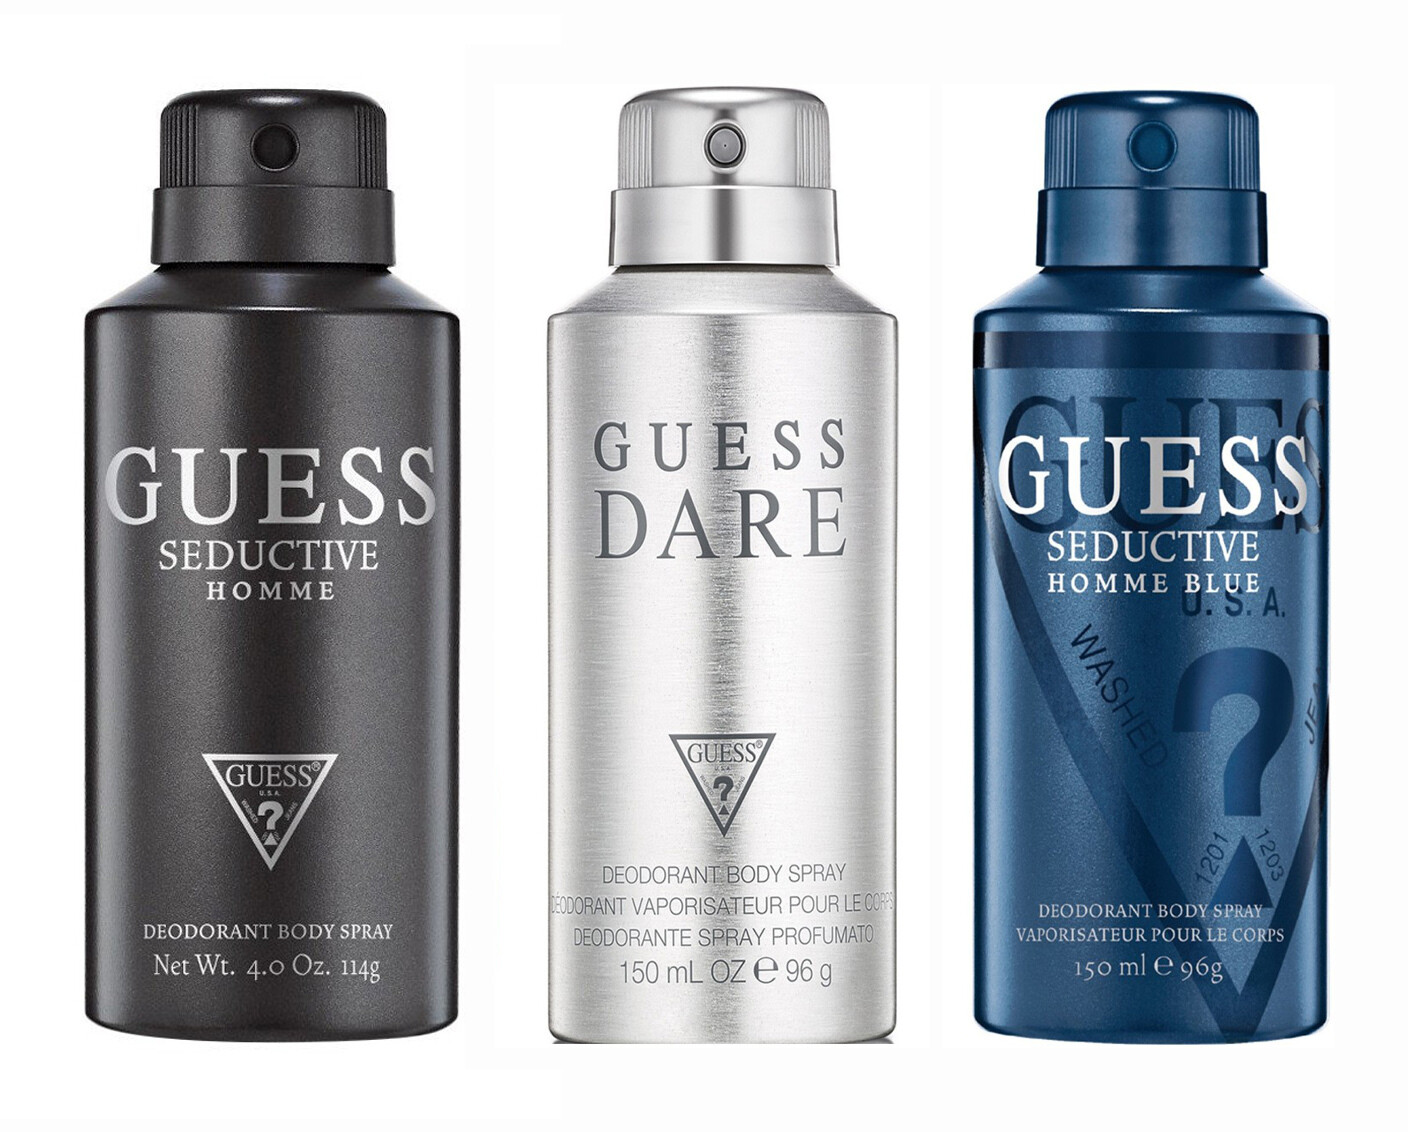 Guess Seductive Homme + Seductive Homme Blue + Dare Deo Combo Set - Pack of 3